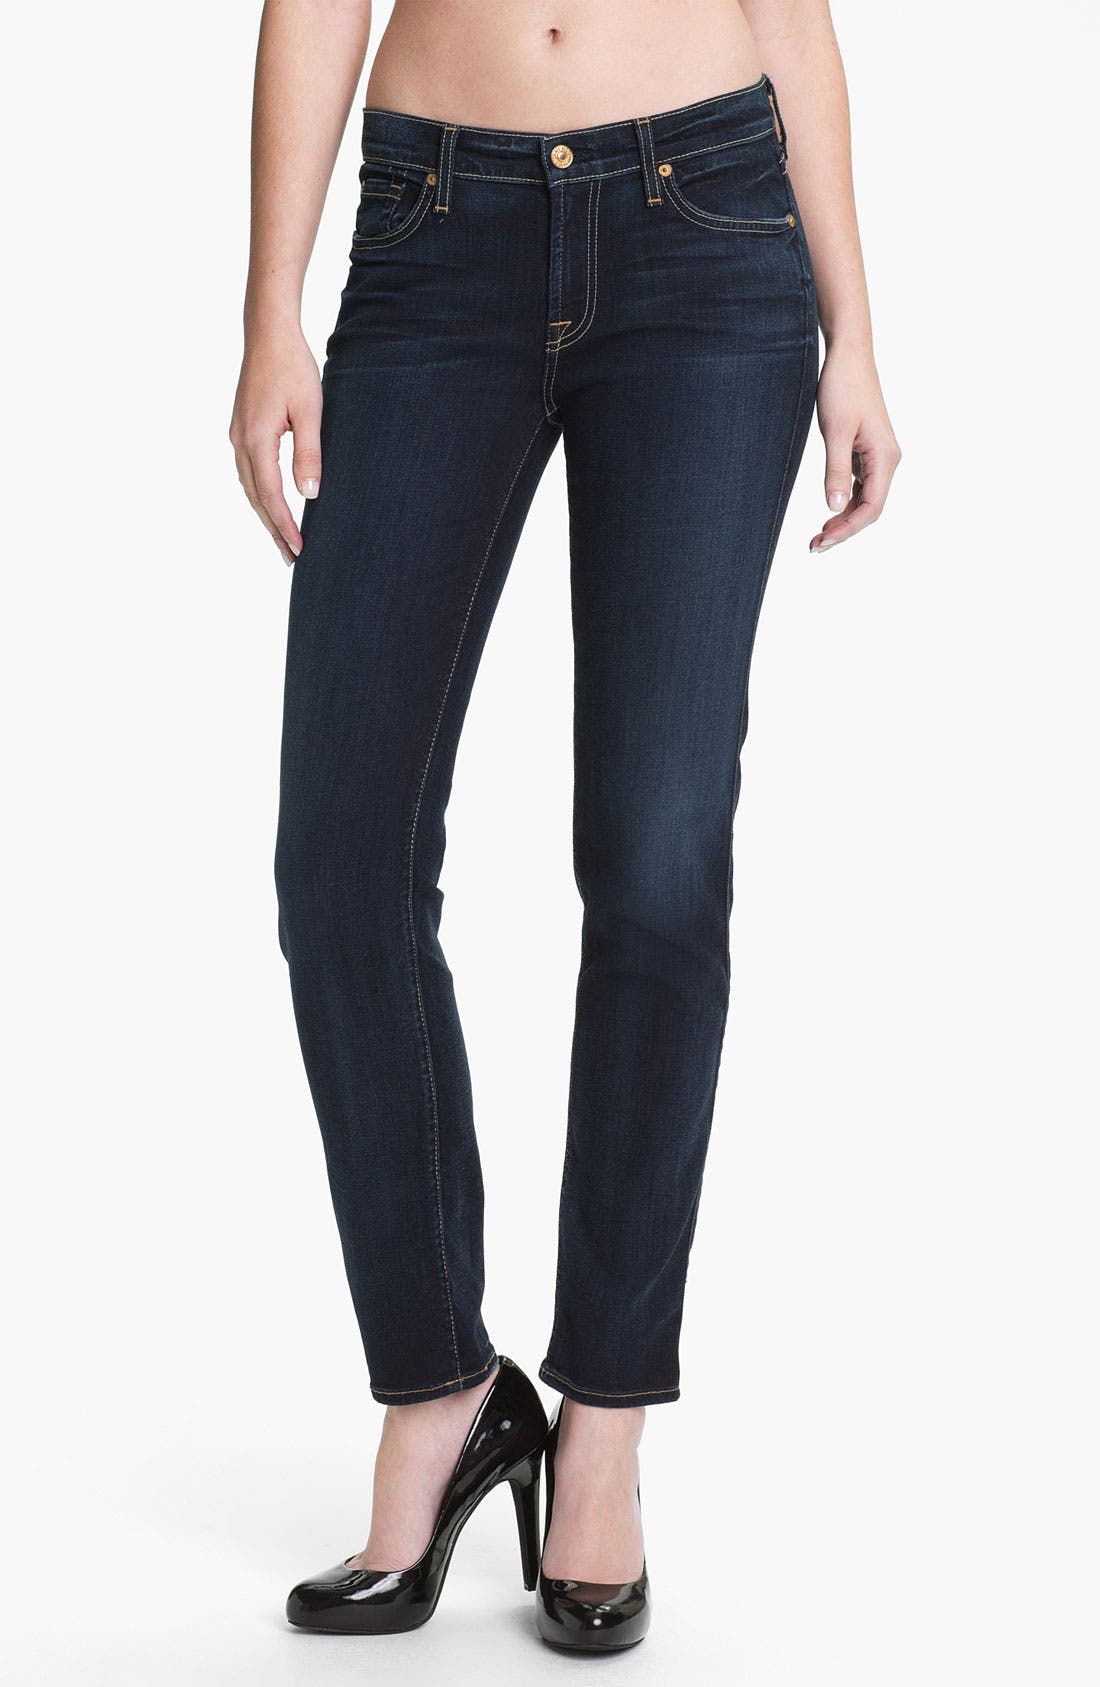 Alternate Image 1 Selected - 7 For All Mankind® 'The Slim Cigarette' Skinny Leg Jeans (Black Night)